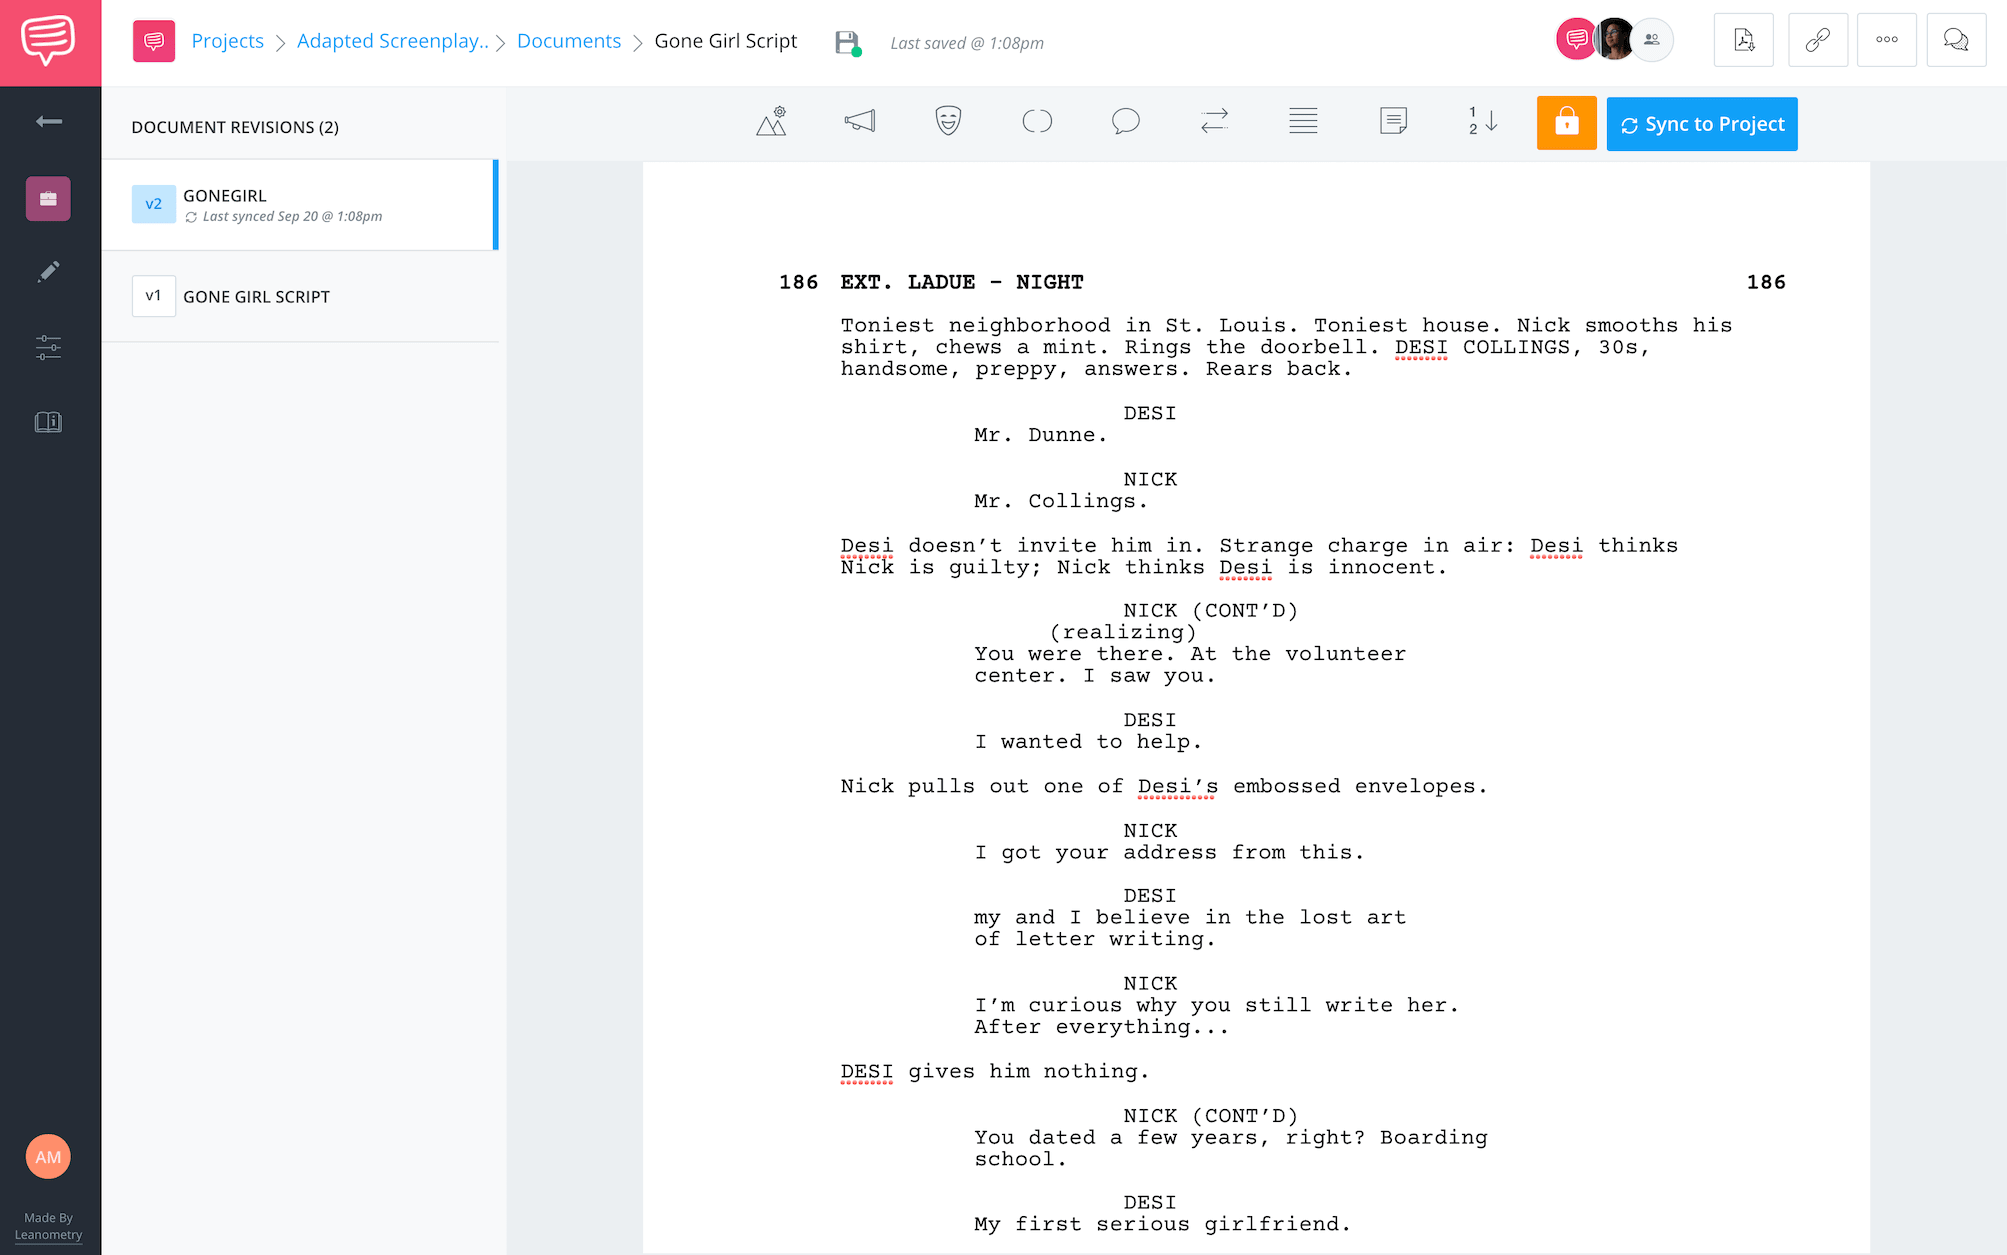 Adapted Screenplay - Gone Girl - StudioBinder Screenwriting Software